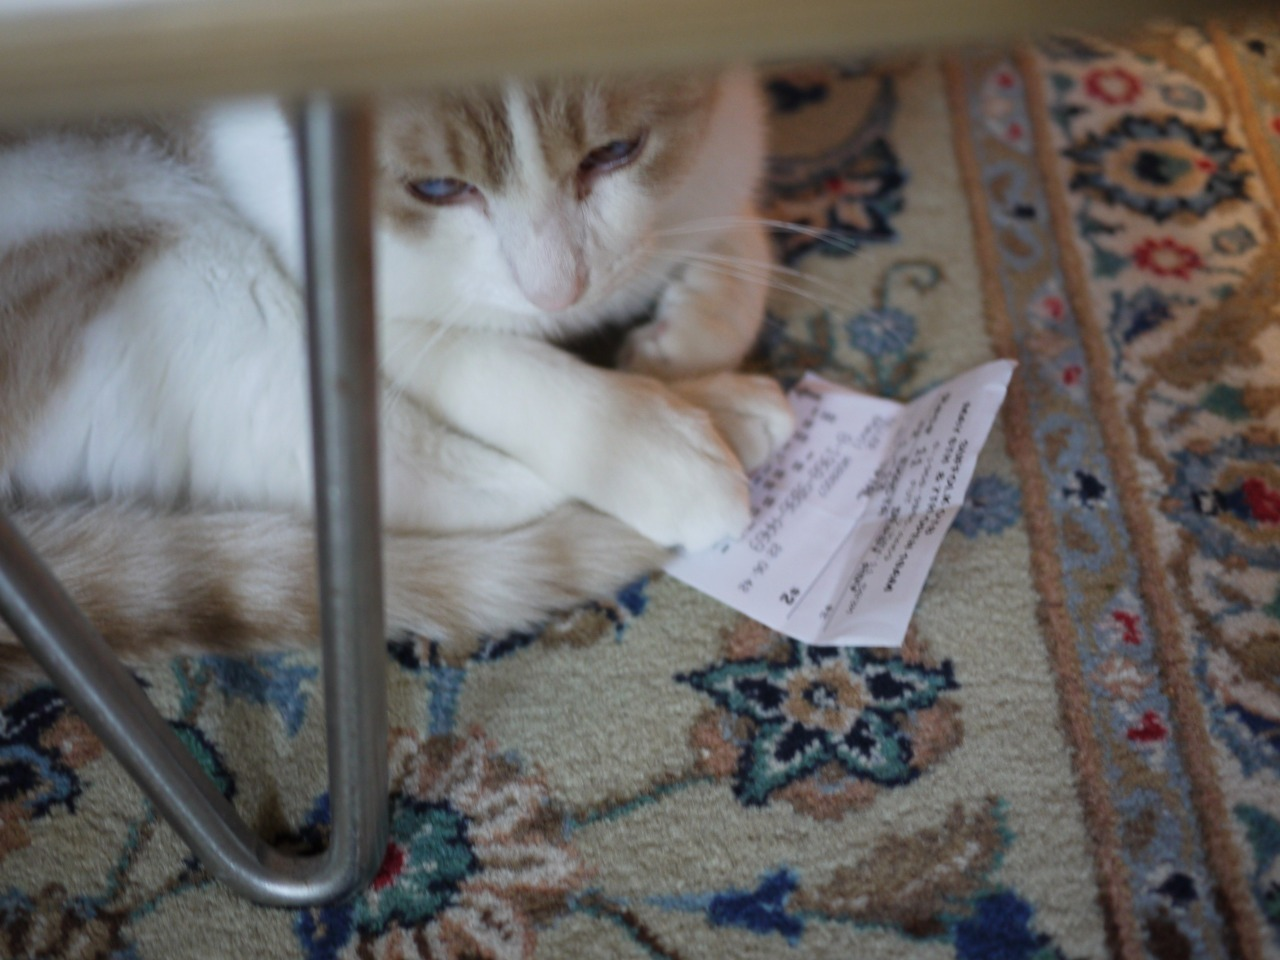 During the Kentucky Derby it dawned on me… Steve is a compulsive gambler!